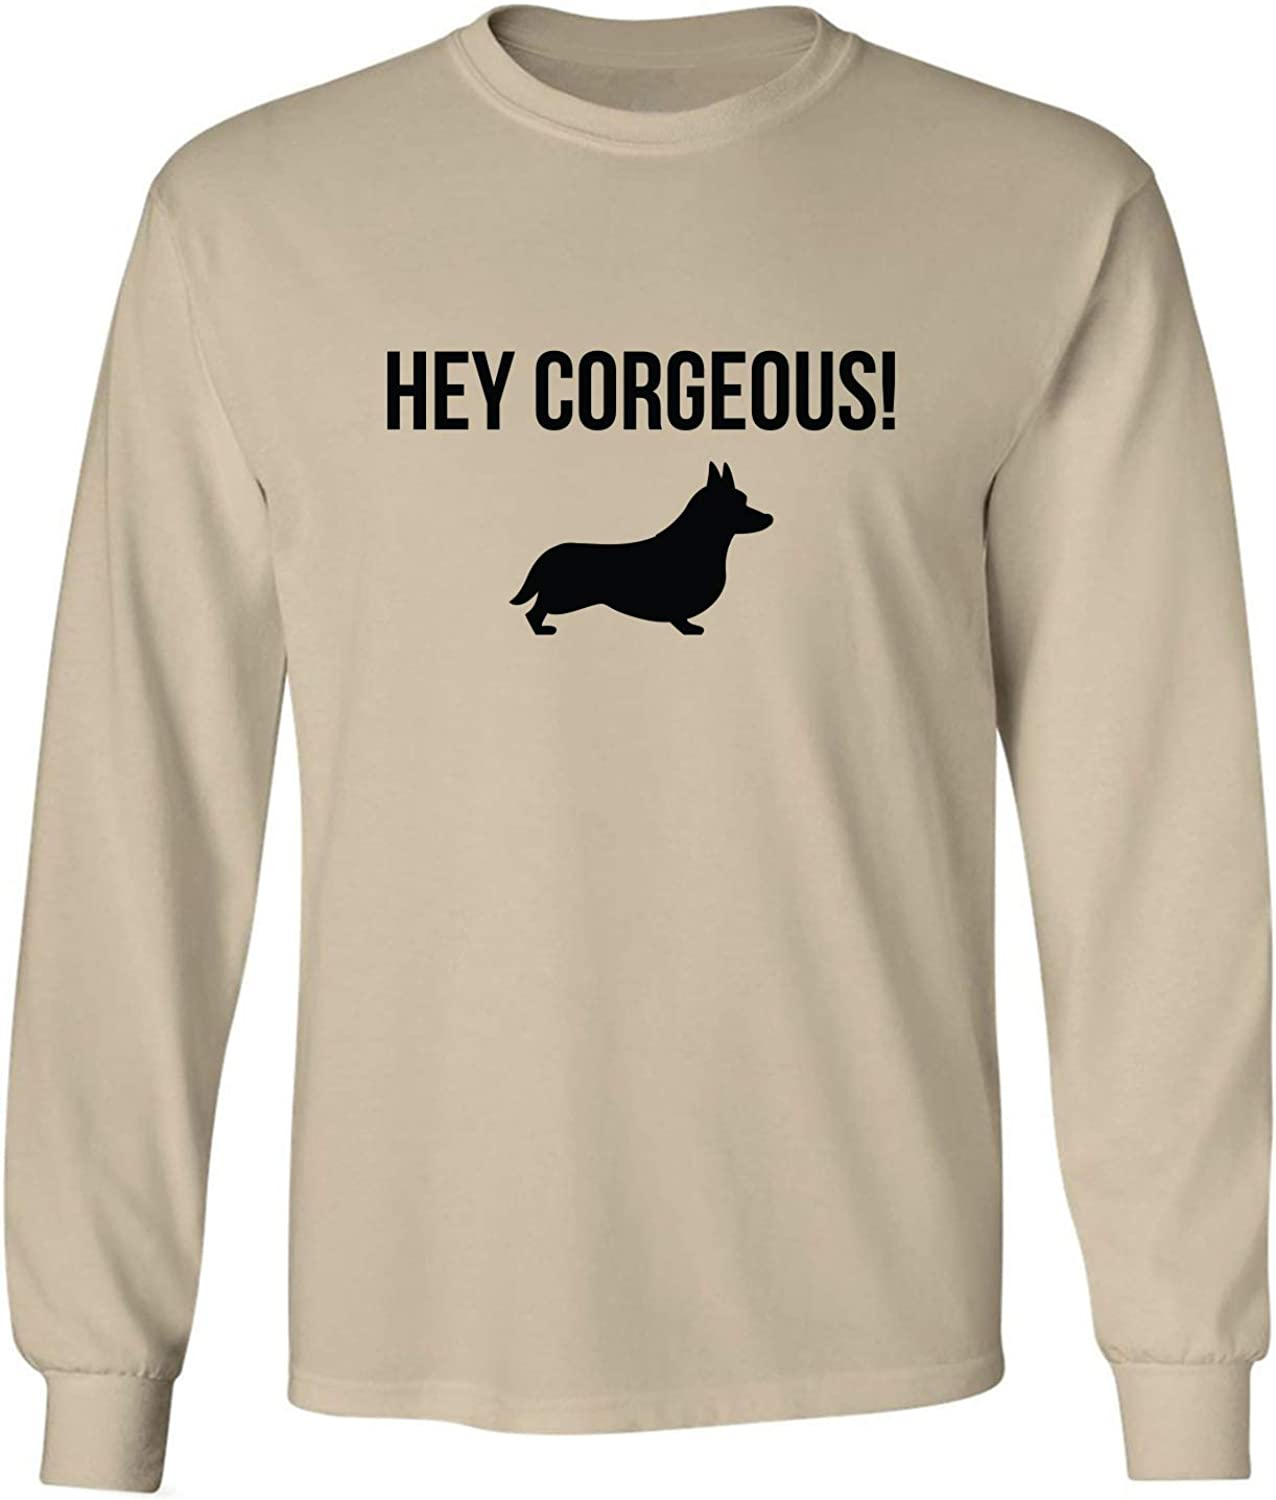 Hey Corgeous! Adult Long Sleeve T-Shirt in Sand - XXX-Large